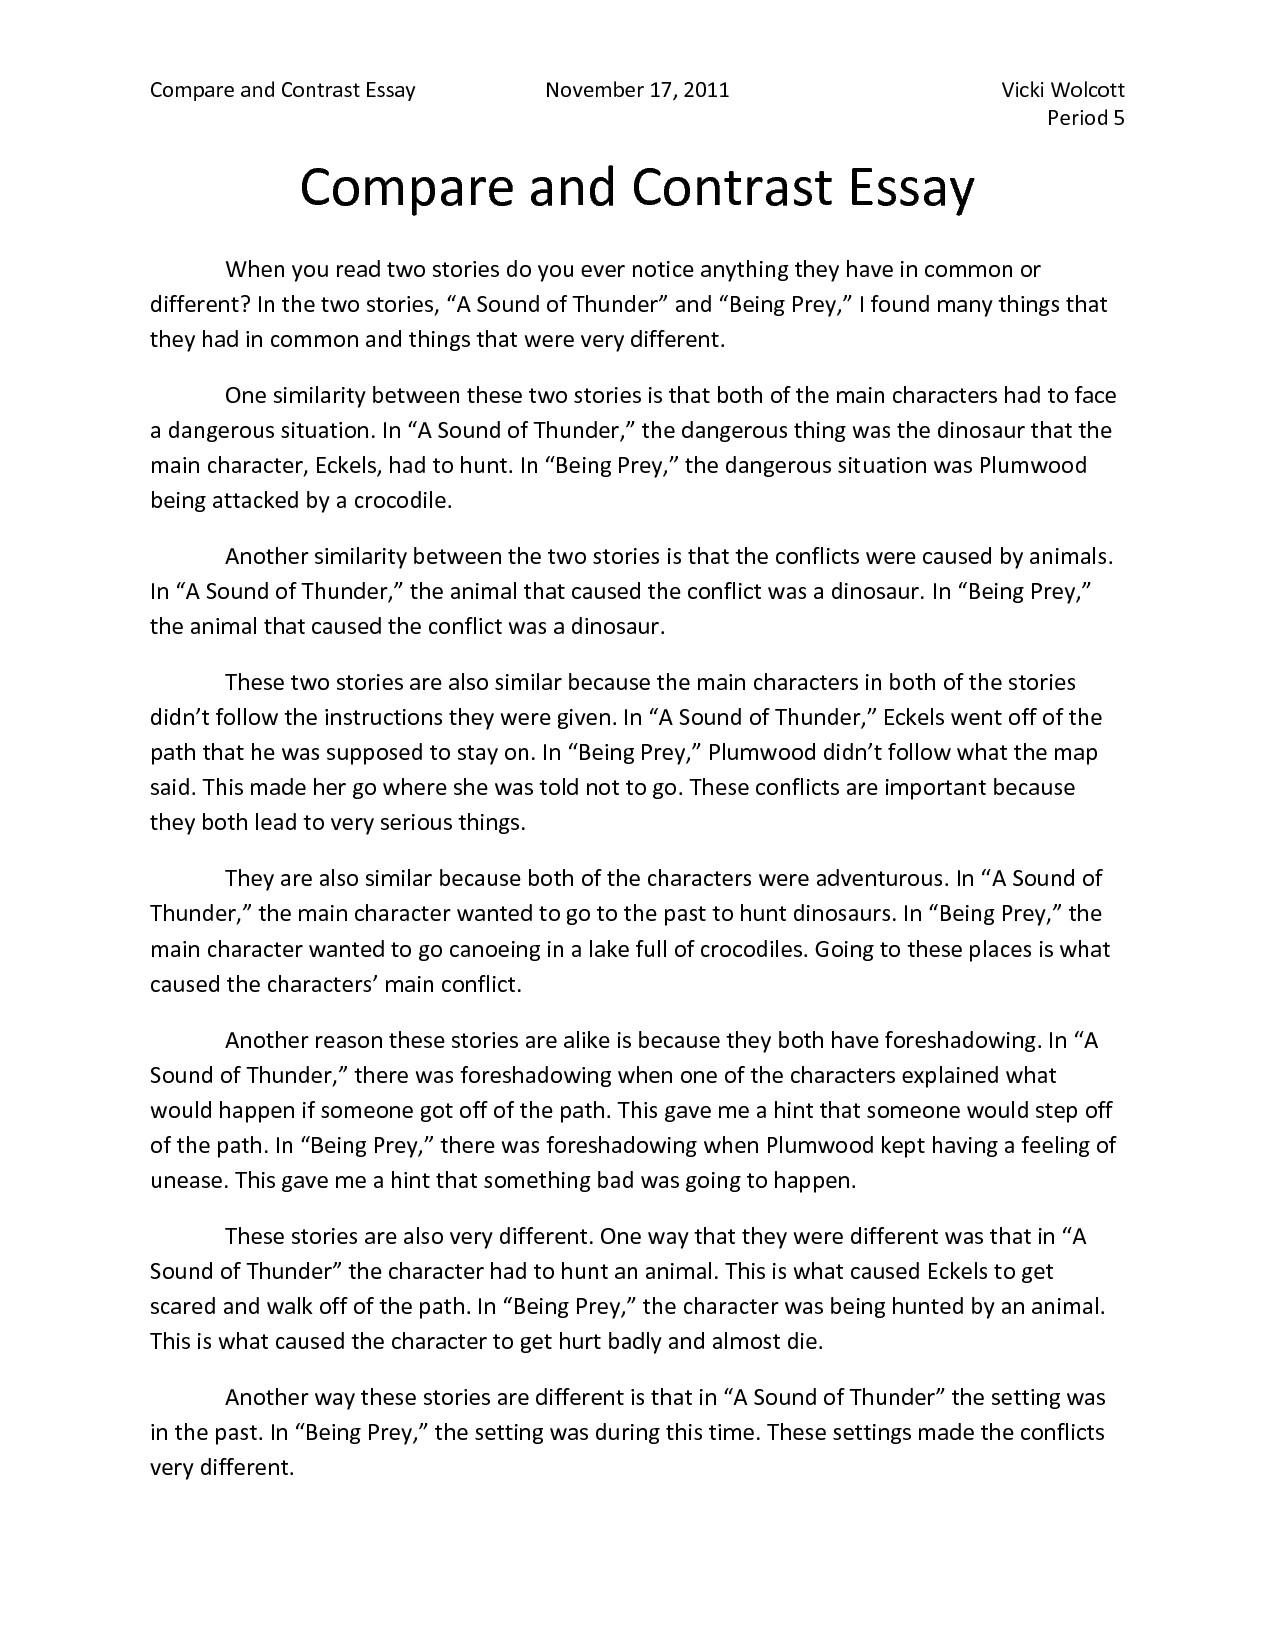 006 Comparing And Contrasting Essay Example Satire Examples Of Comparison Contrast Essays Com How To Write Outstanding A Compare Block Format Thesis Introduction Paragraph Full